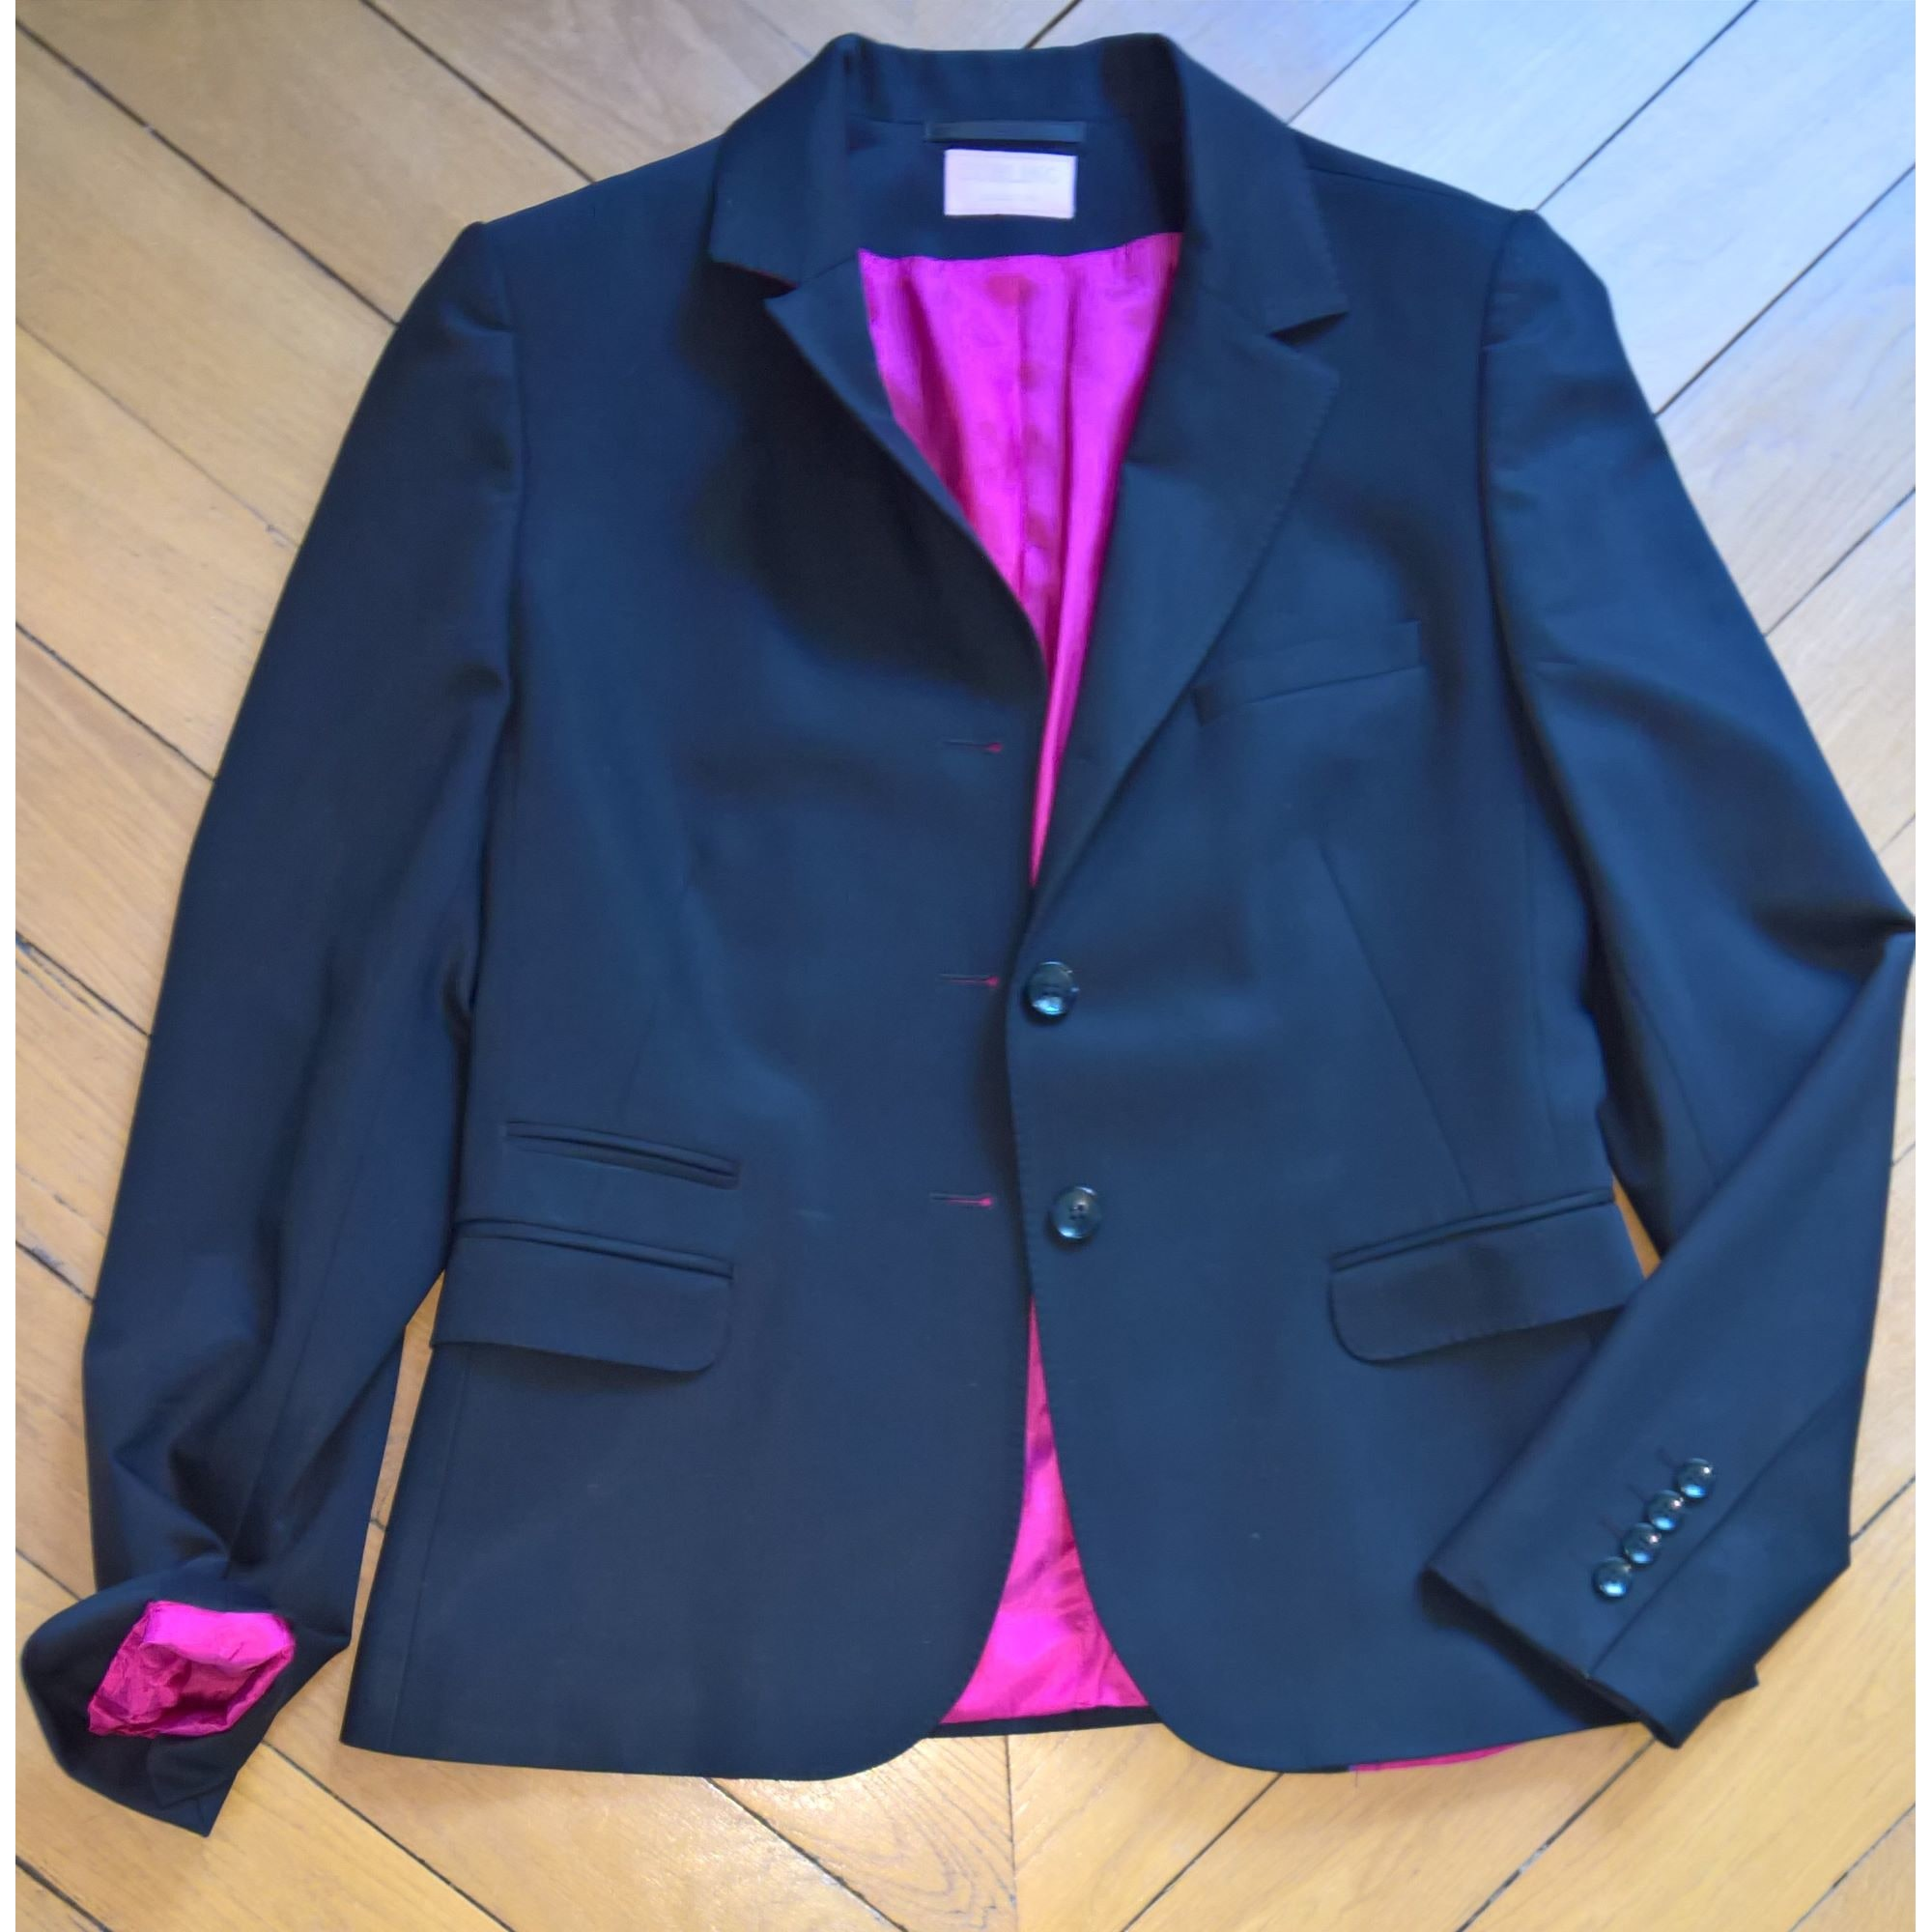 Blazer, Giacca tailleurr CURLING Nero